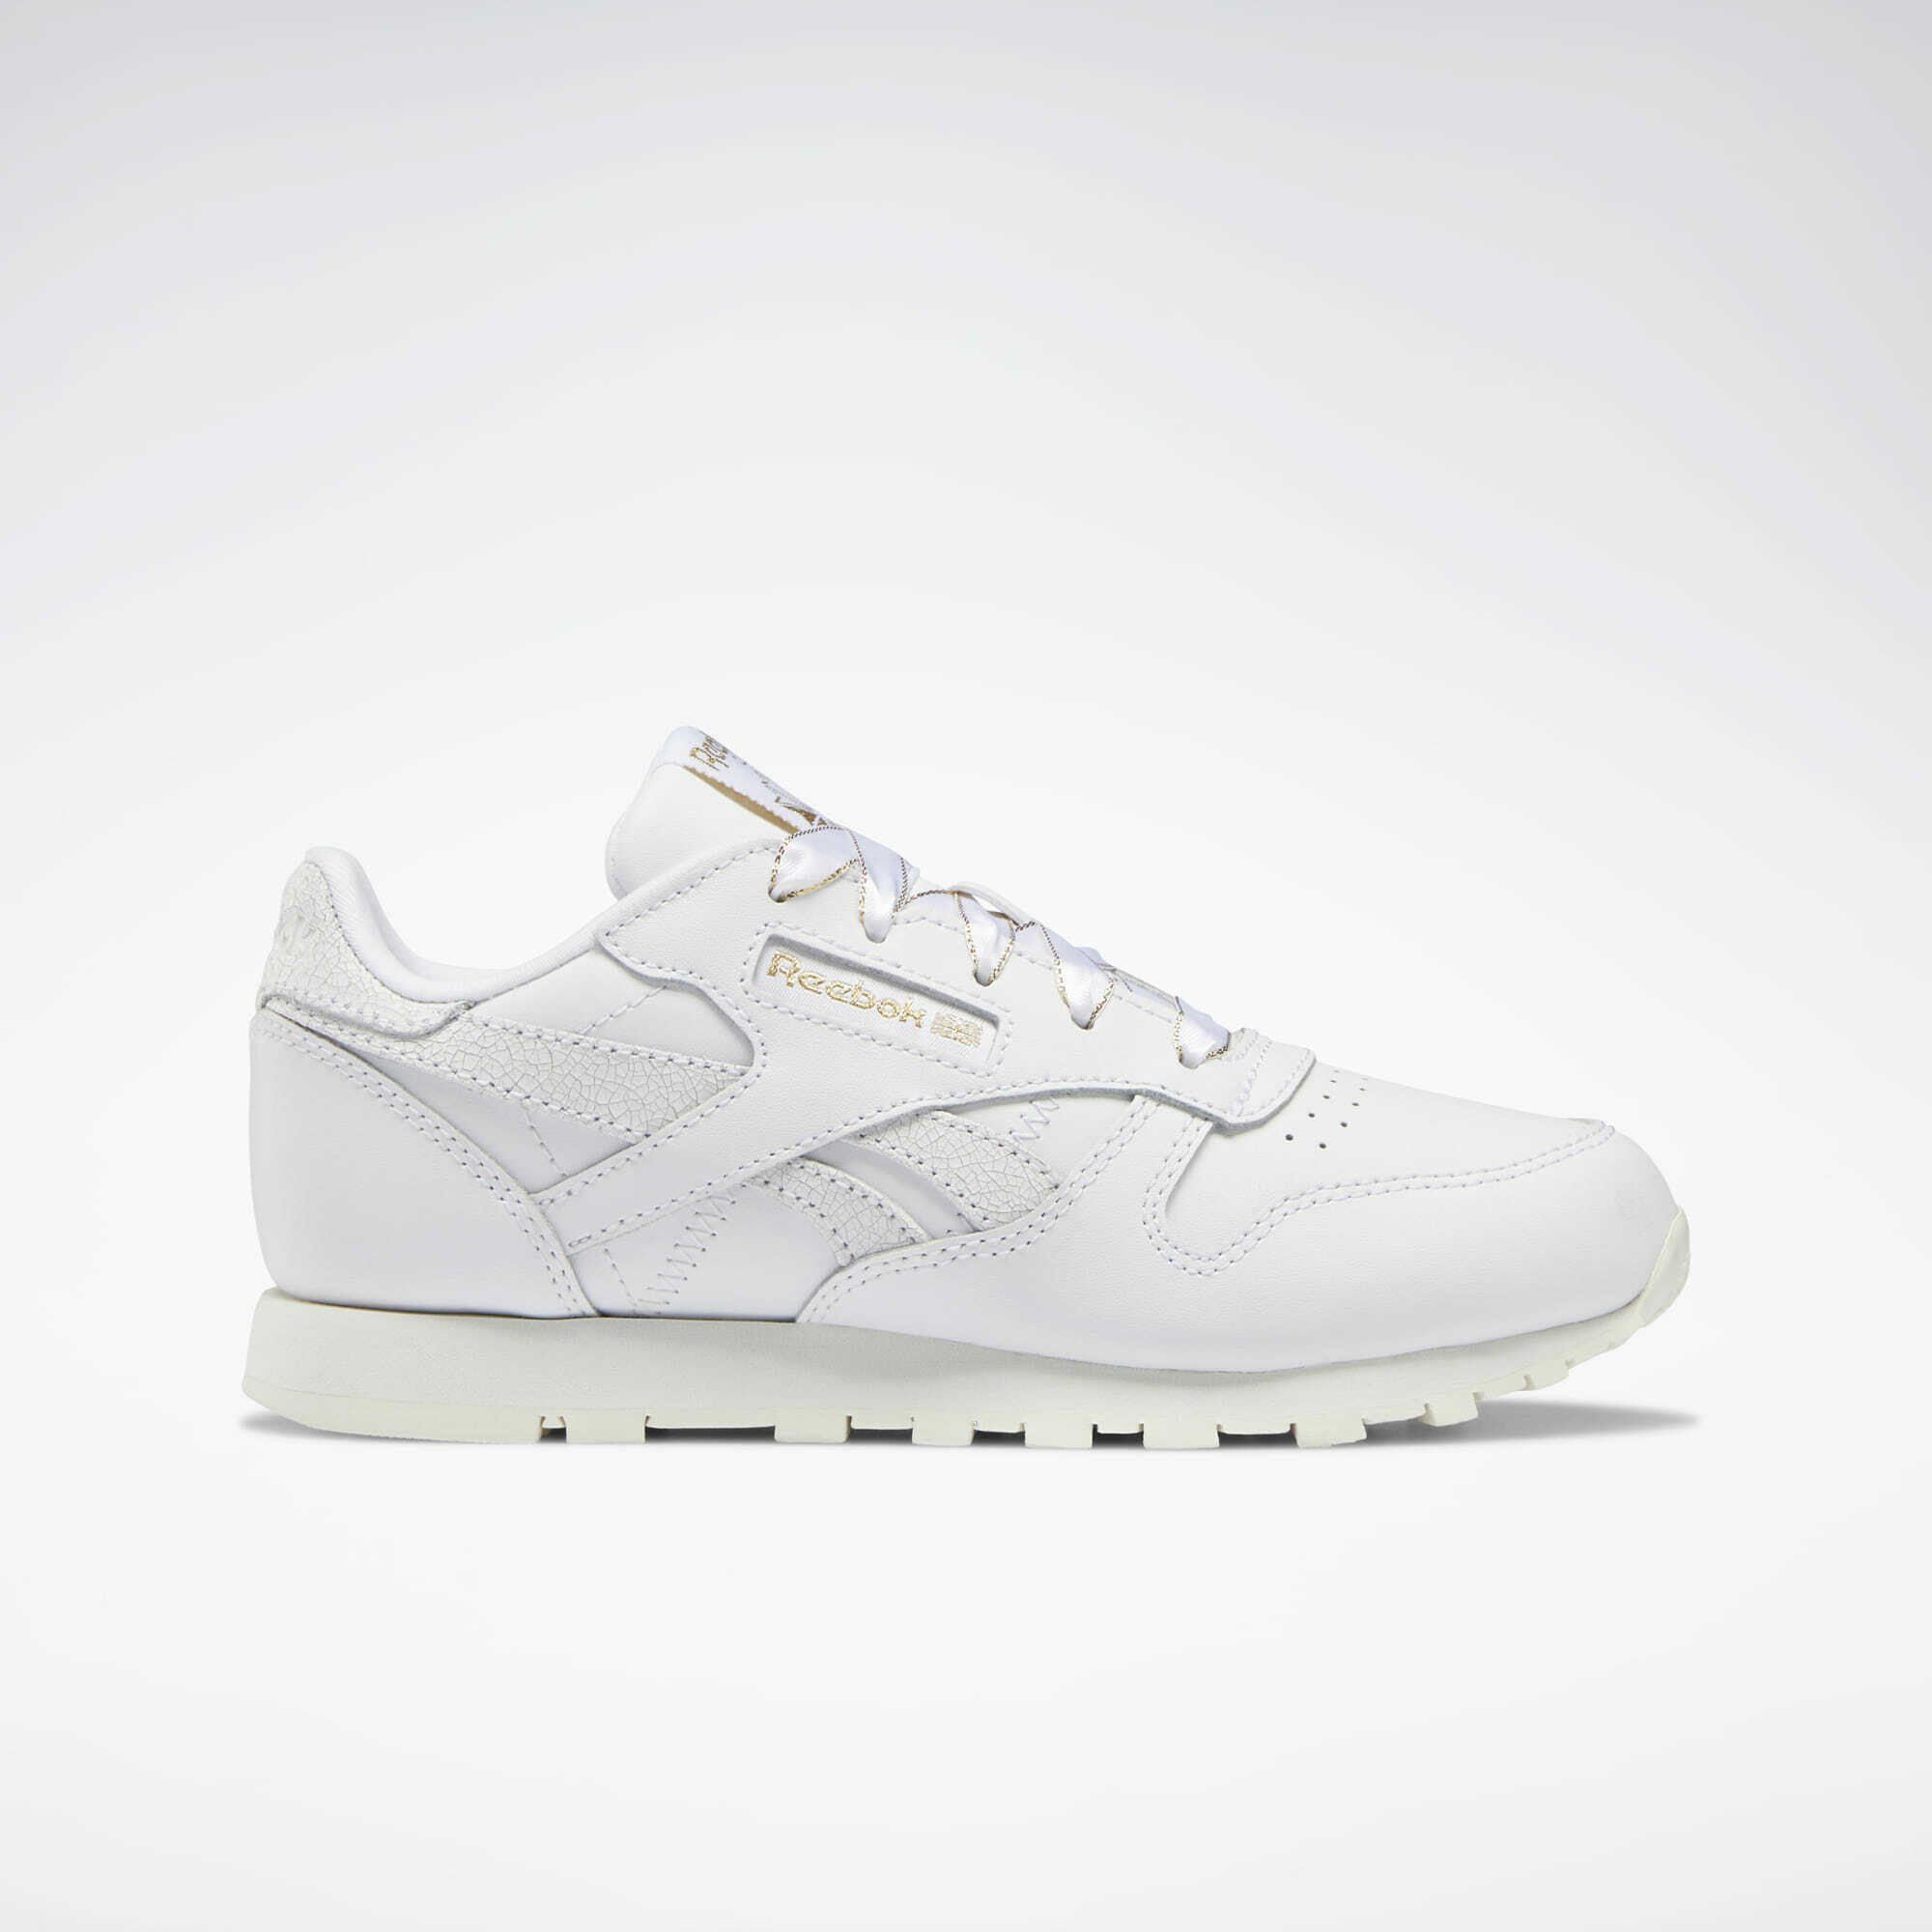 Reebok Classic »Classic Leather Shoes« Sneaker online kaufen | OTTO